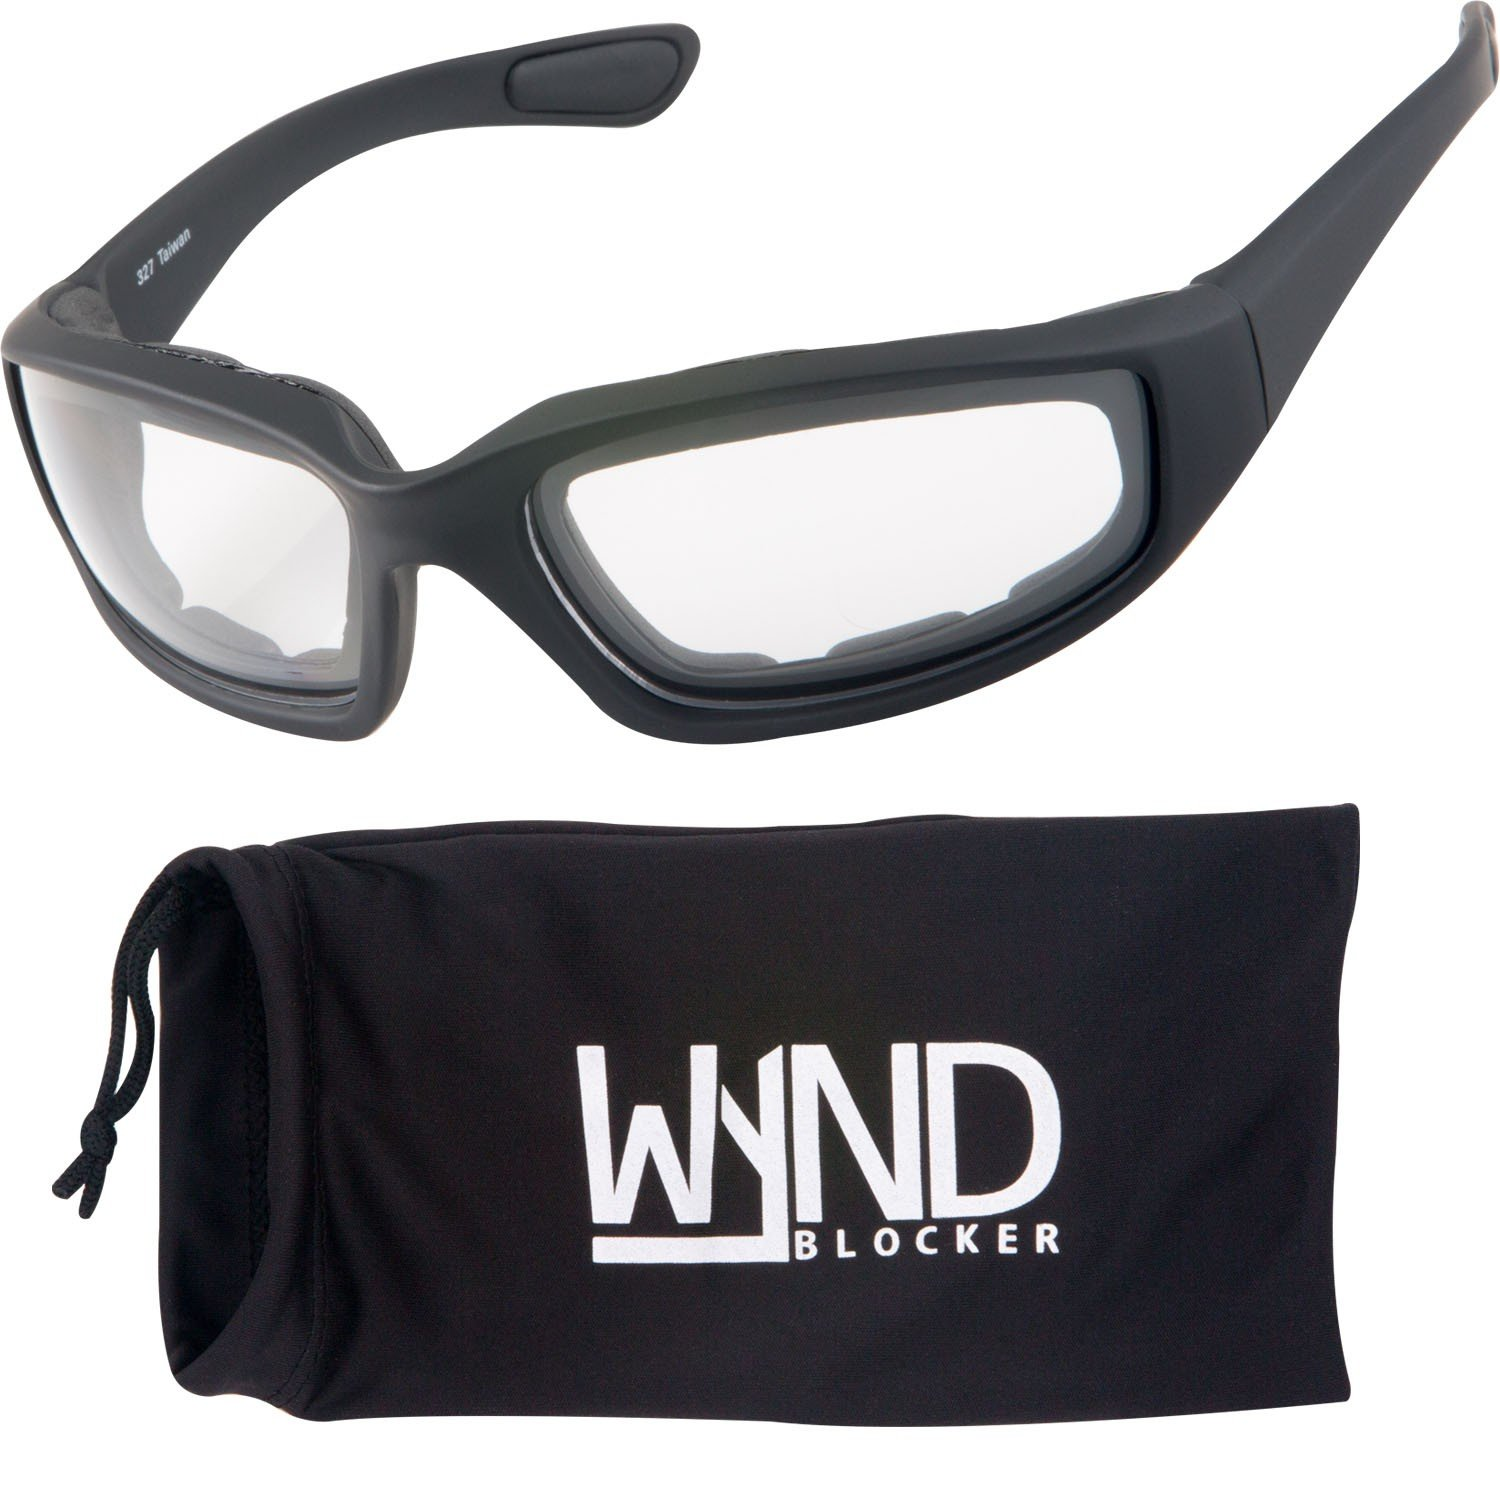 0d9f006e7f8 Amazon.com  WYND Blocker Motorcycle   Biking Wind Resistant Sports Wrap  Sunglasses (Black Clear Lens)  Clothing